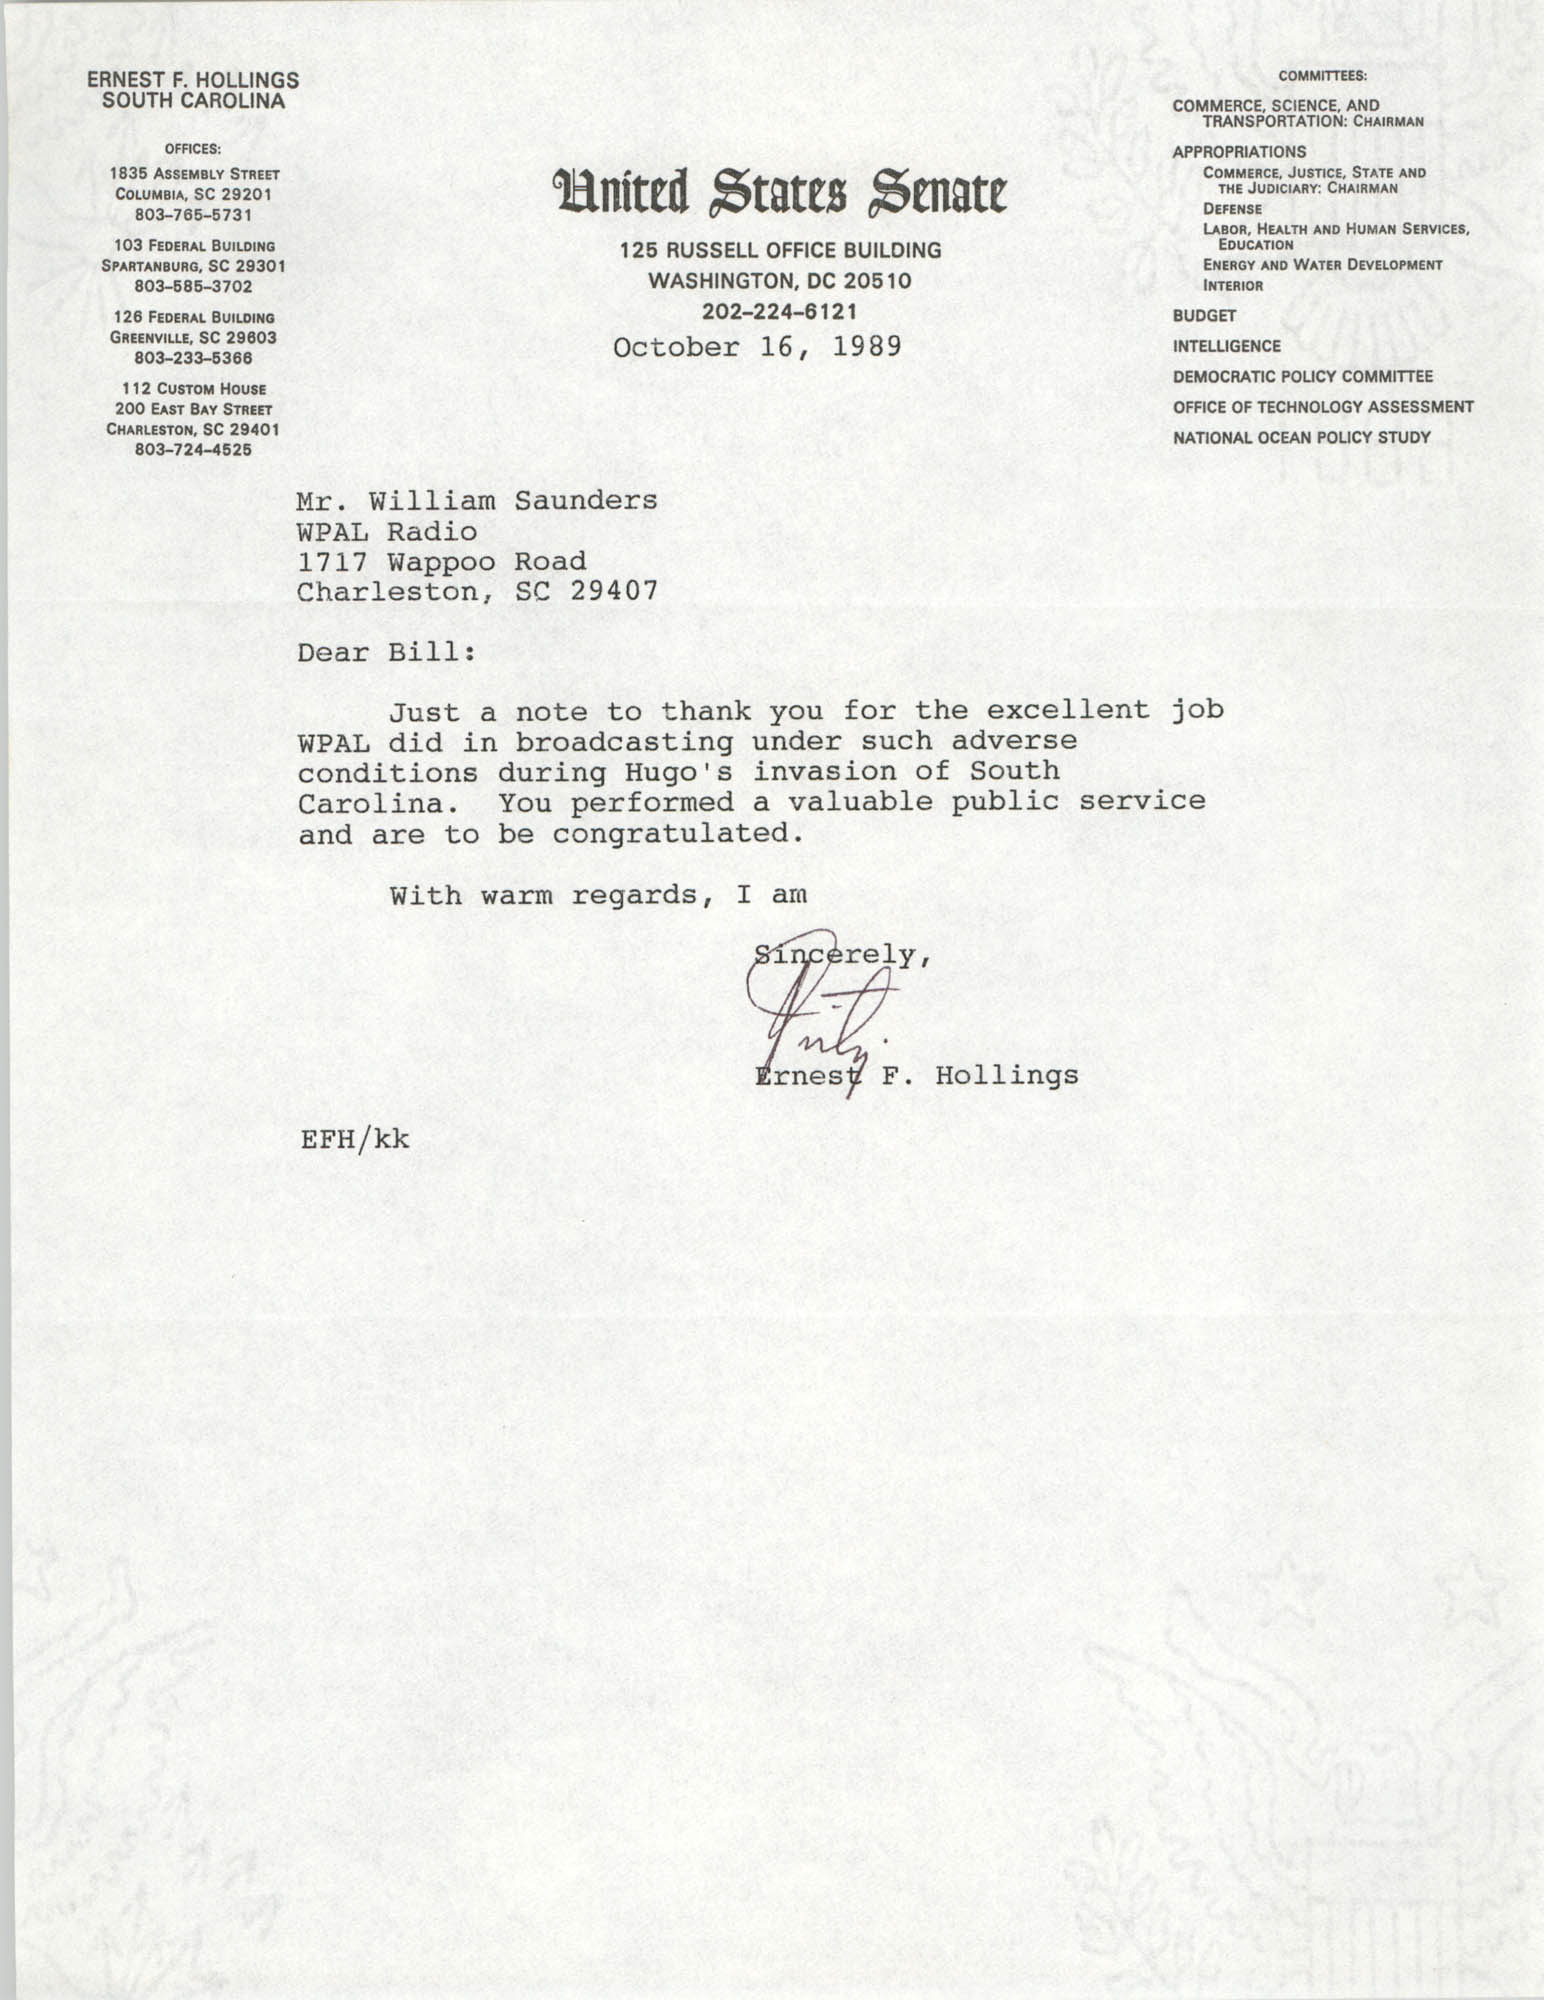 Letter from Ernest F. Hollings to William Saunders, October 16, 1989